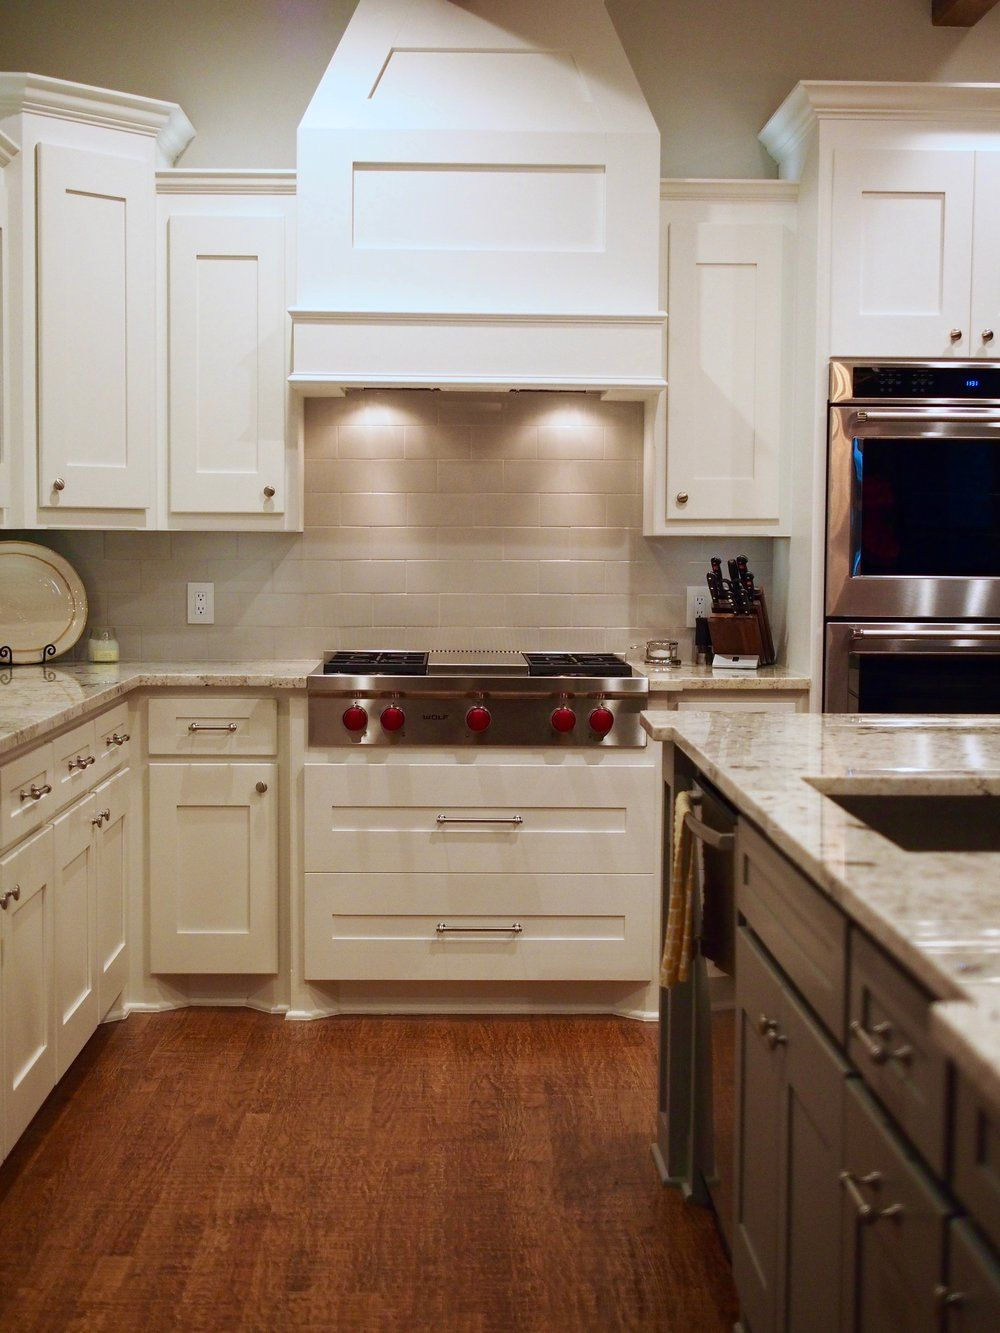 Best Sherwin Williams Snowbound Painted Cabinets Gauntlet Gray 400 x 300